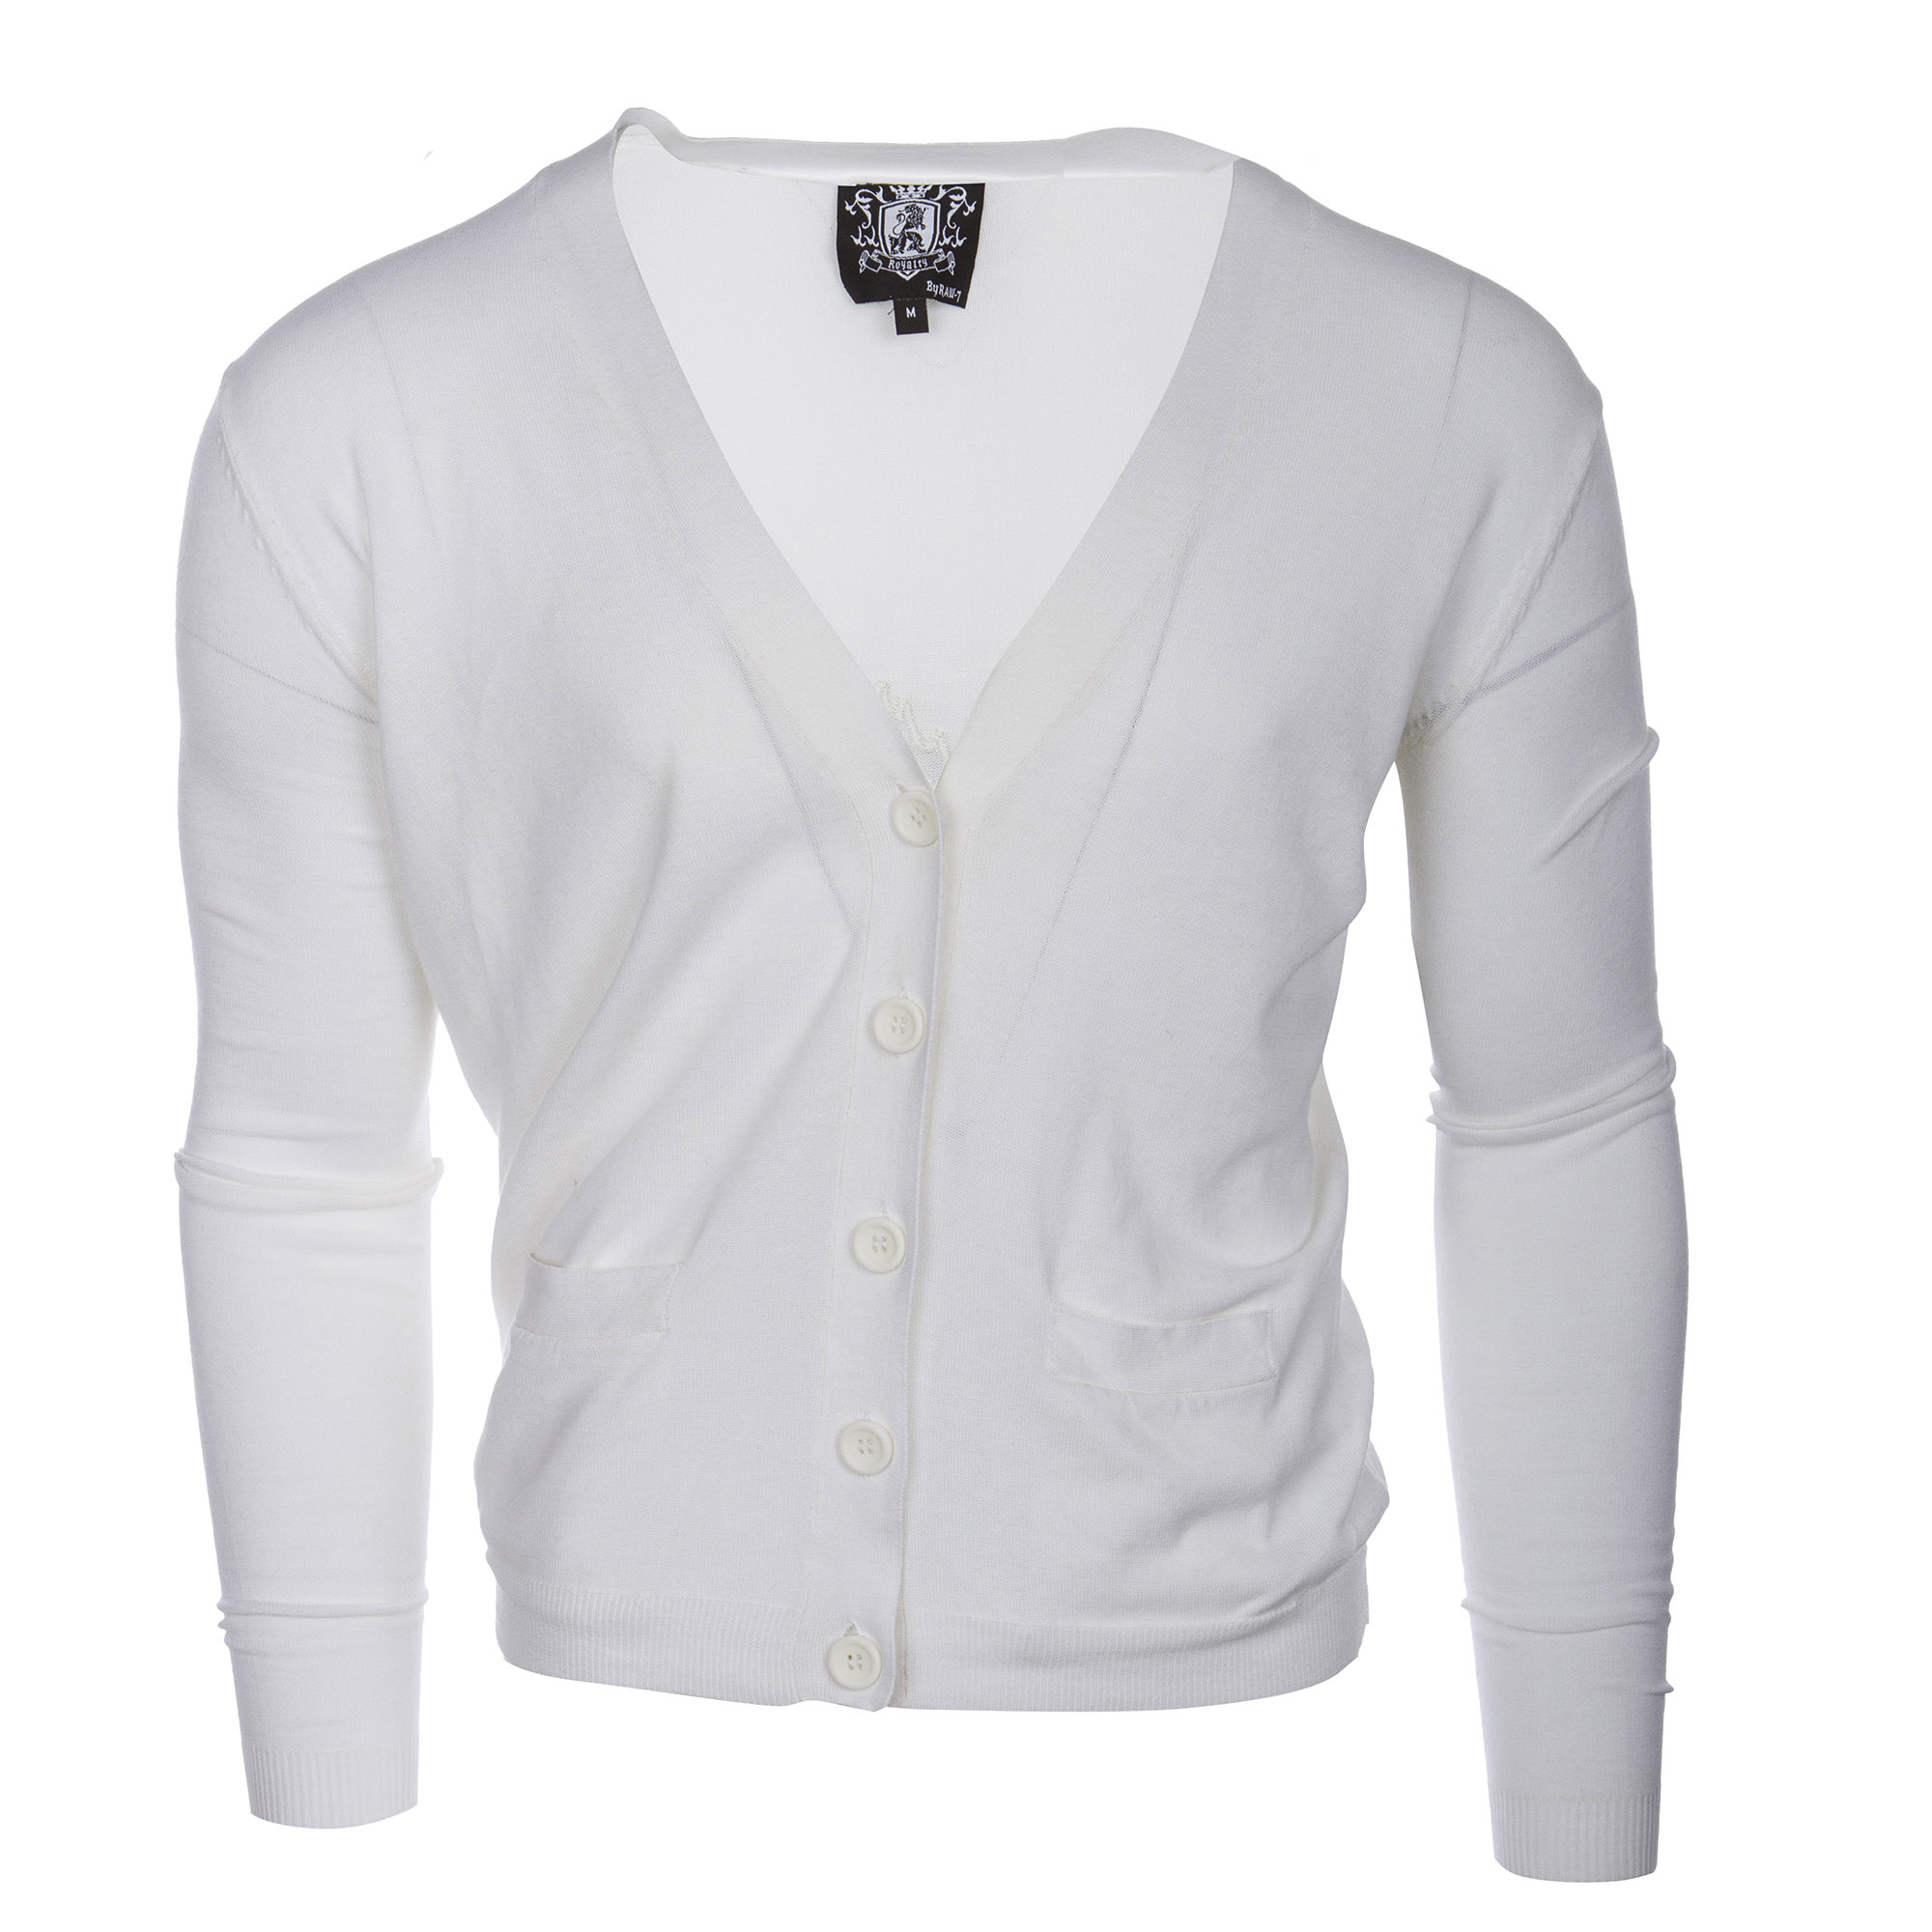 RAW 7 Y08A01S-WHITE Royalty by Raw7 Men's White Cardigan Eagles Design